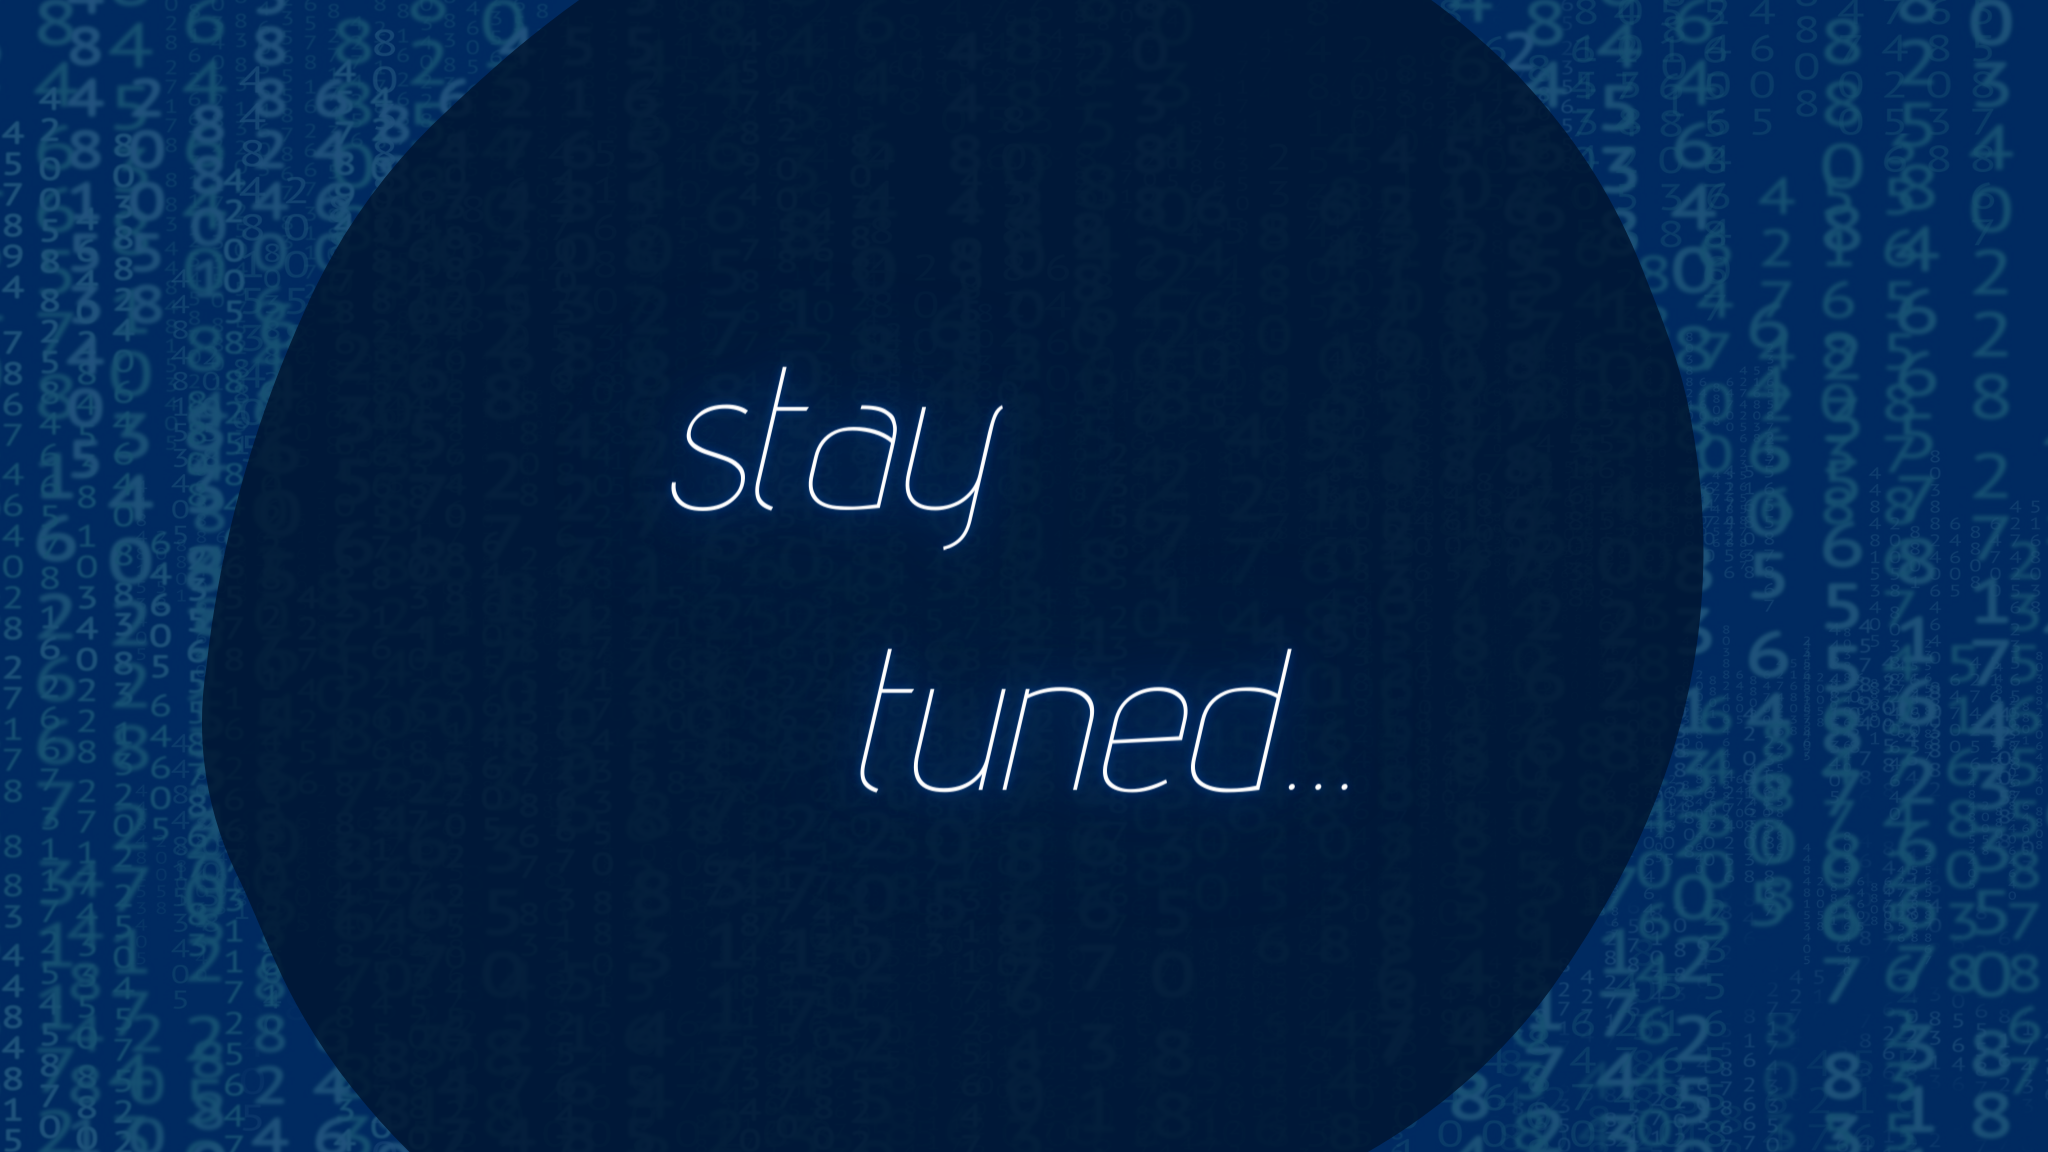 Stay tuned for our next events!